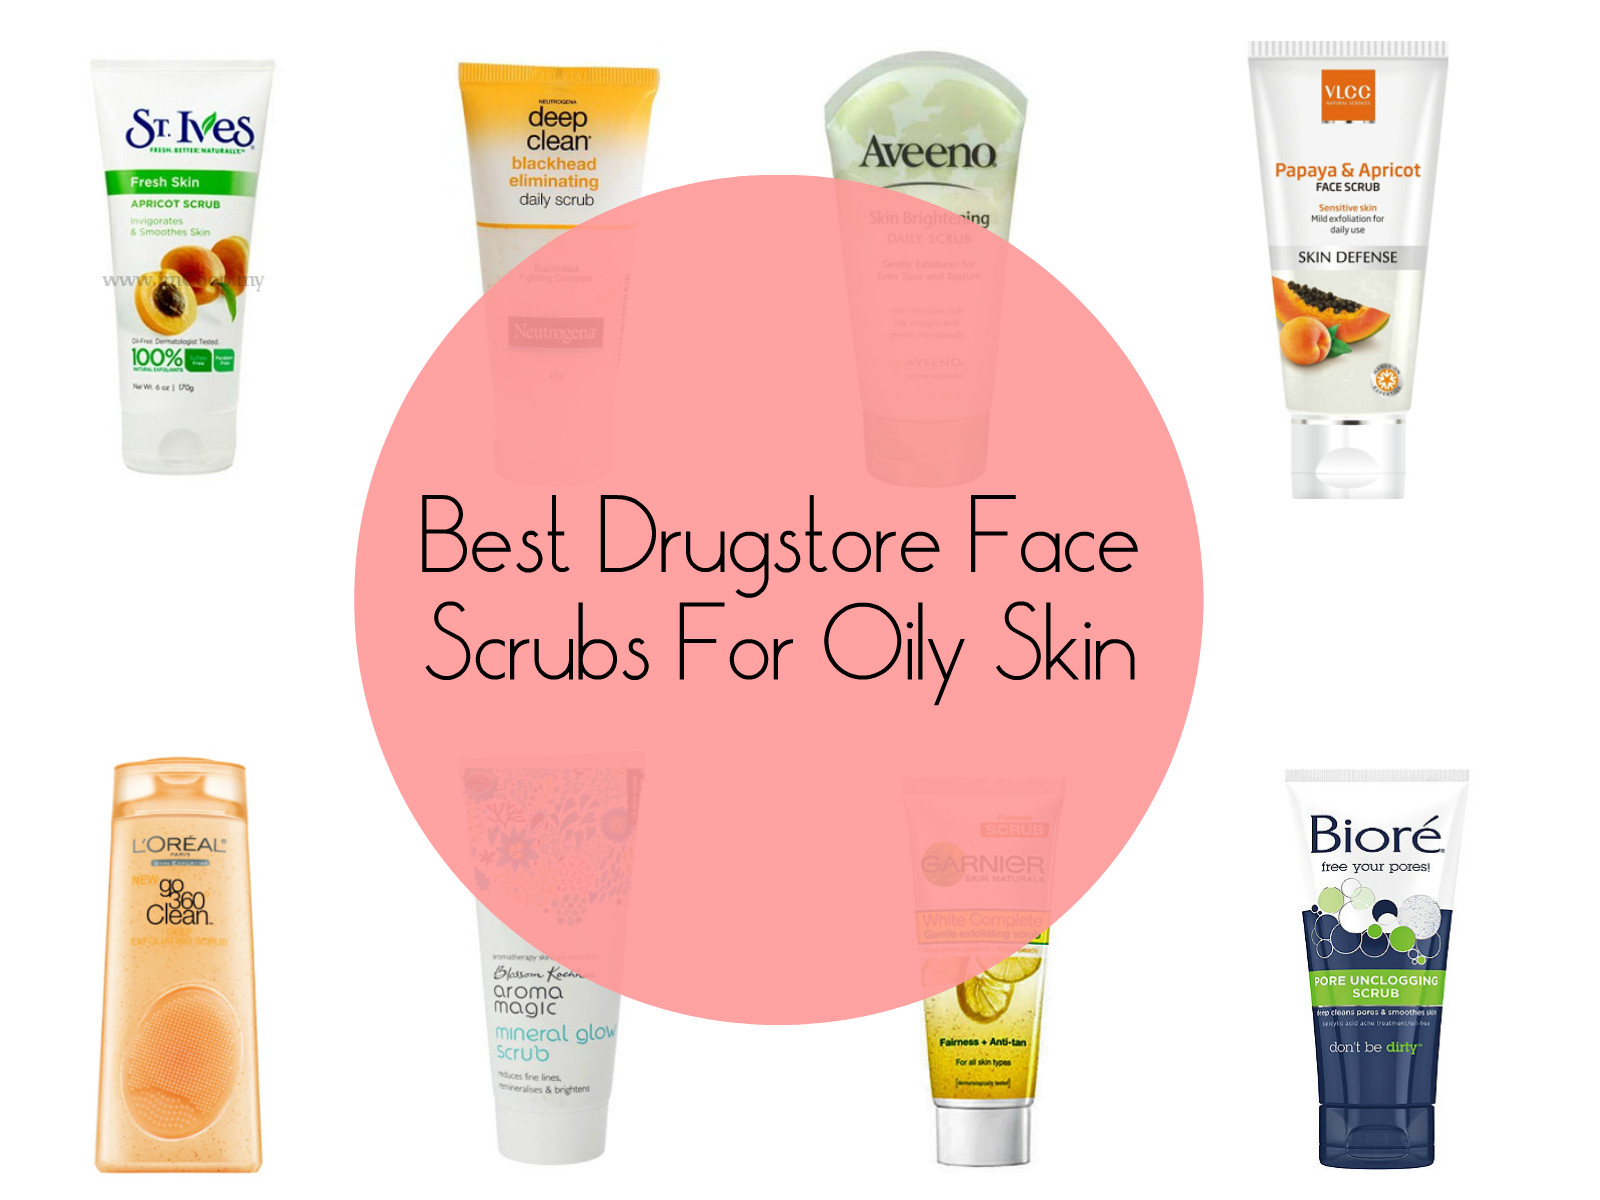 Best Drugstore Face Scrubs For Oily Skin